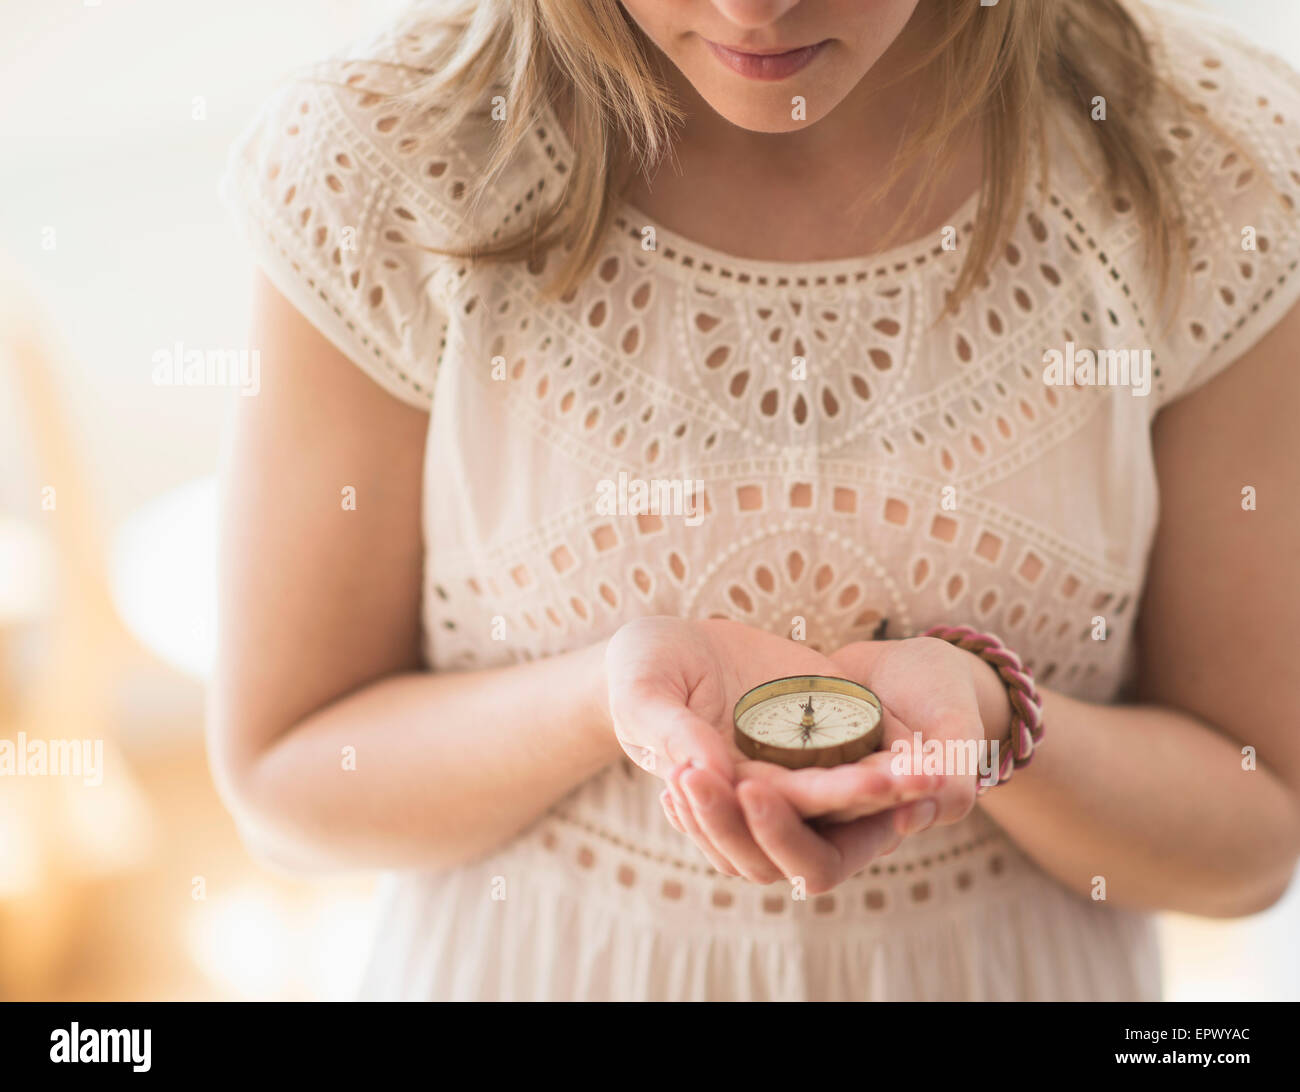 Woman holding navigation compass - Stock Image